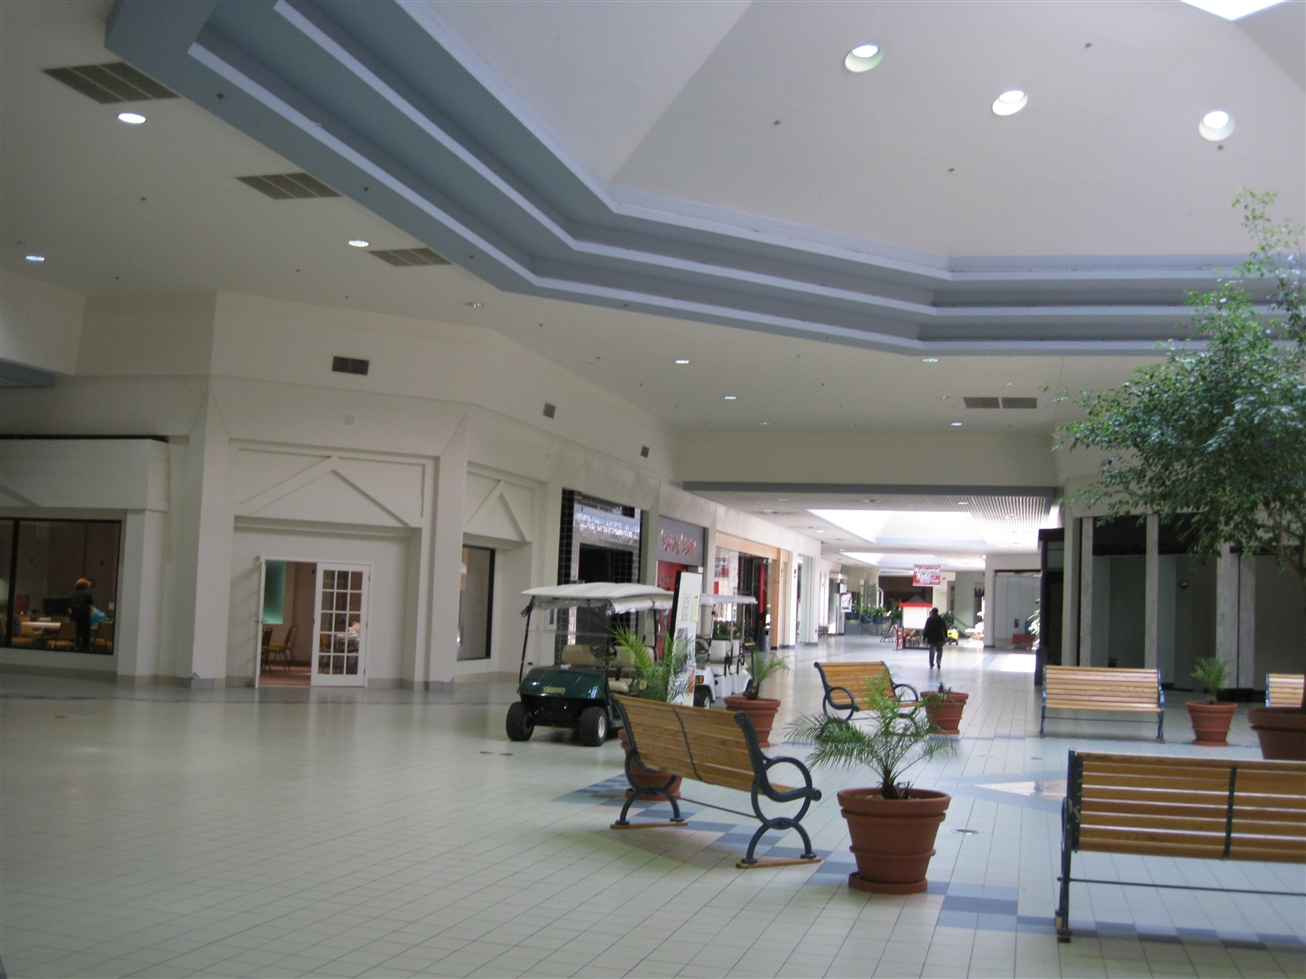 South Park Mall / Summer Grove Church in Shreveport, LA